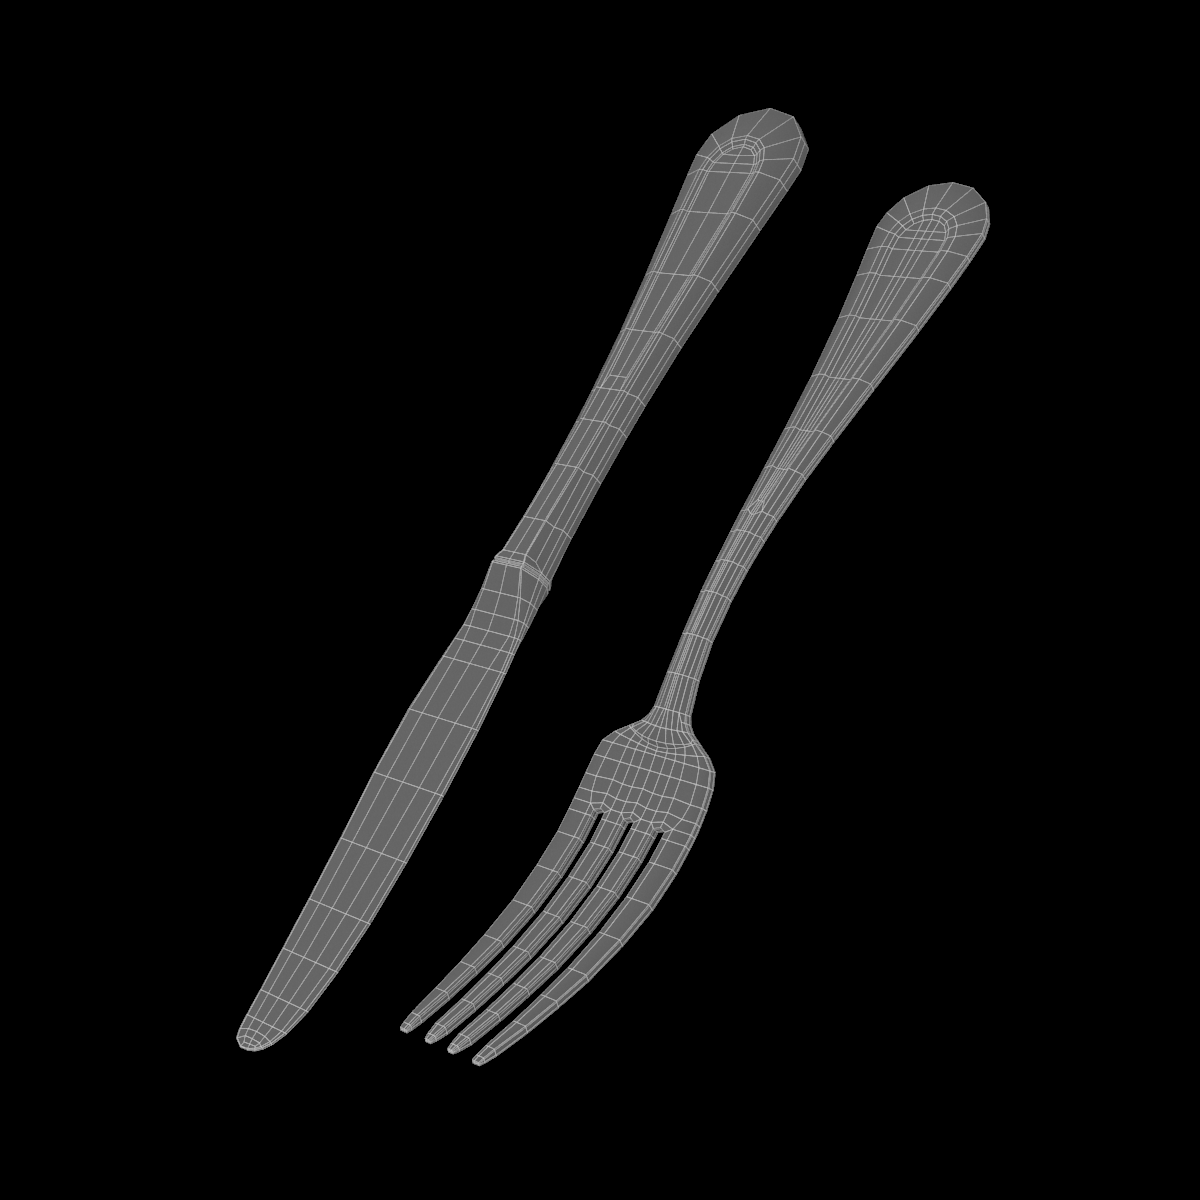 table dinner knife and fork classic cutlery 3d model 3ds max fbx c4d ma mb obj 284034